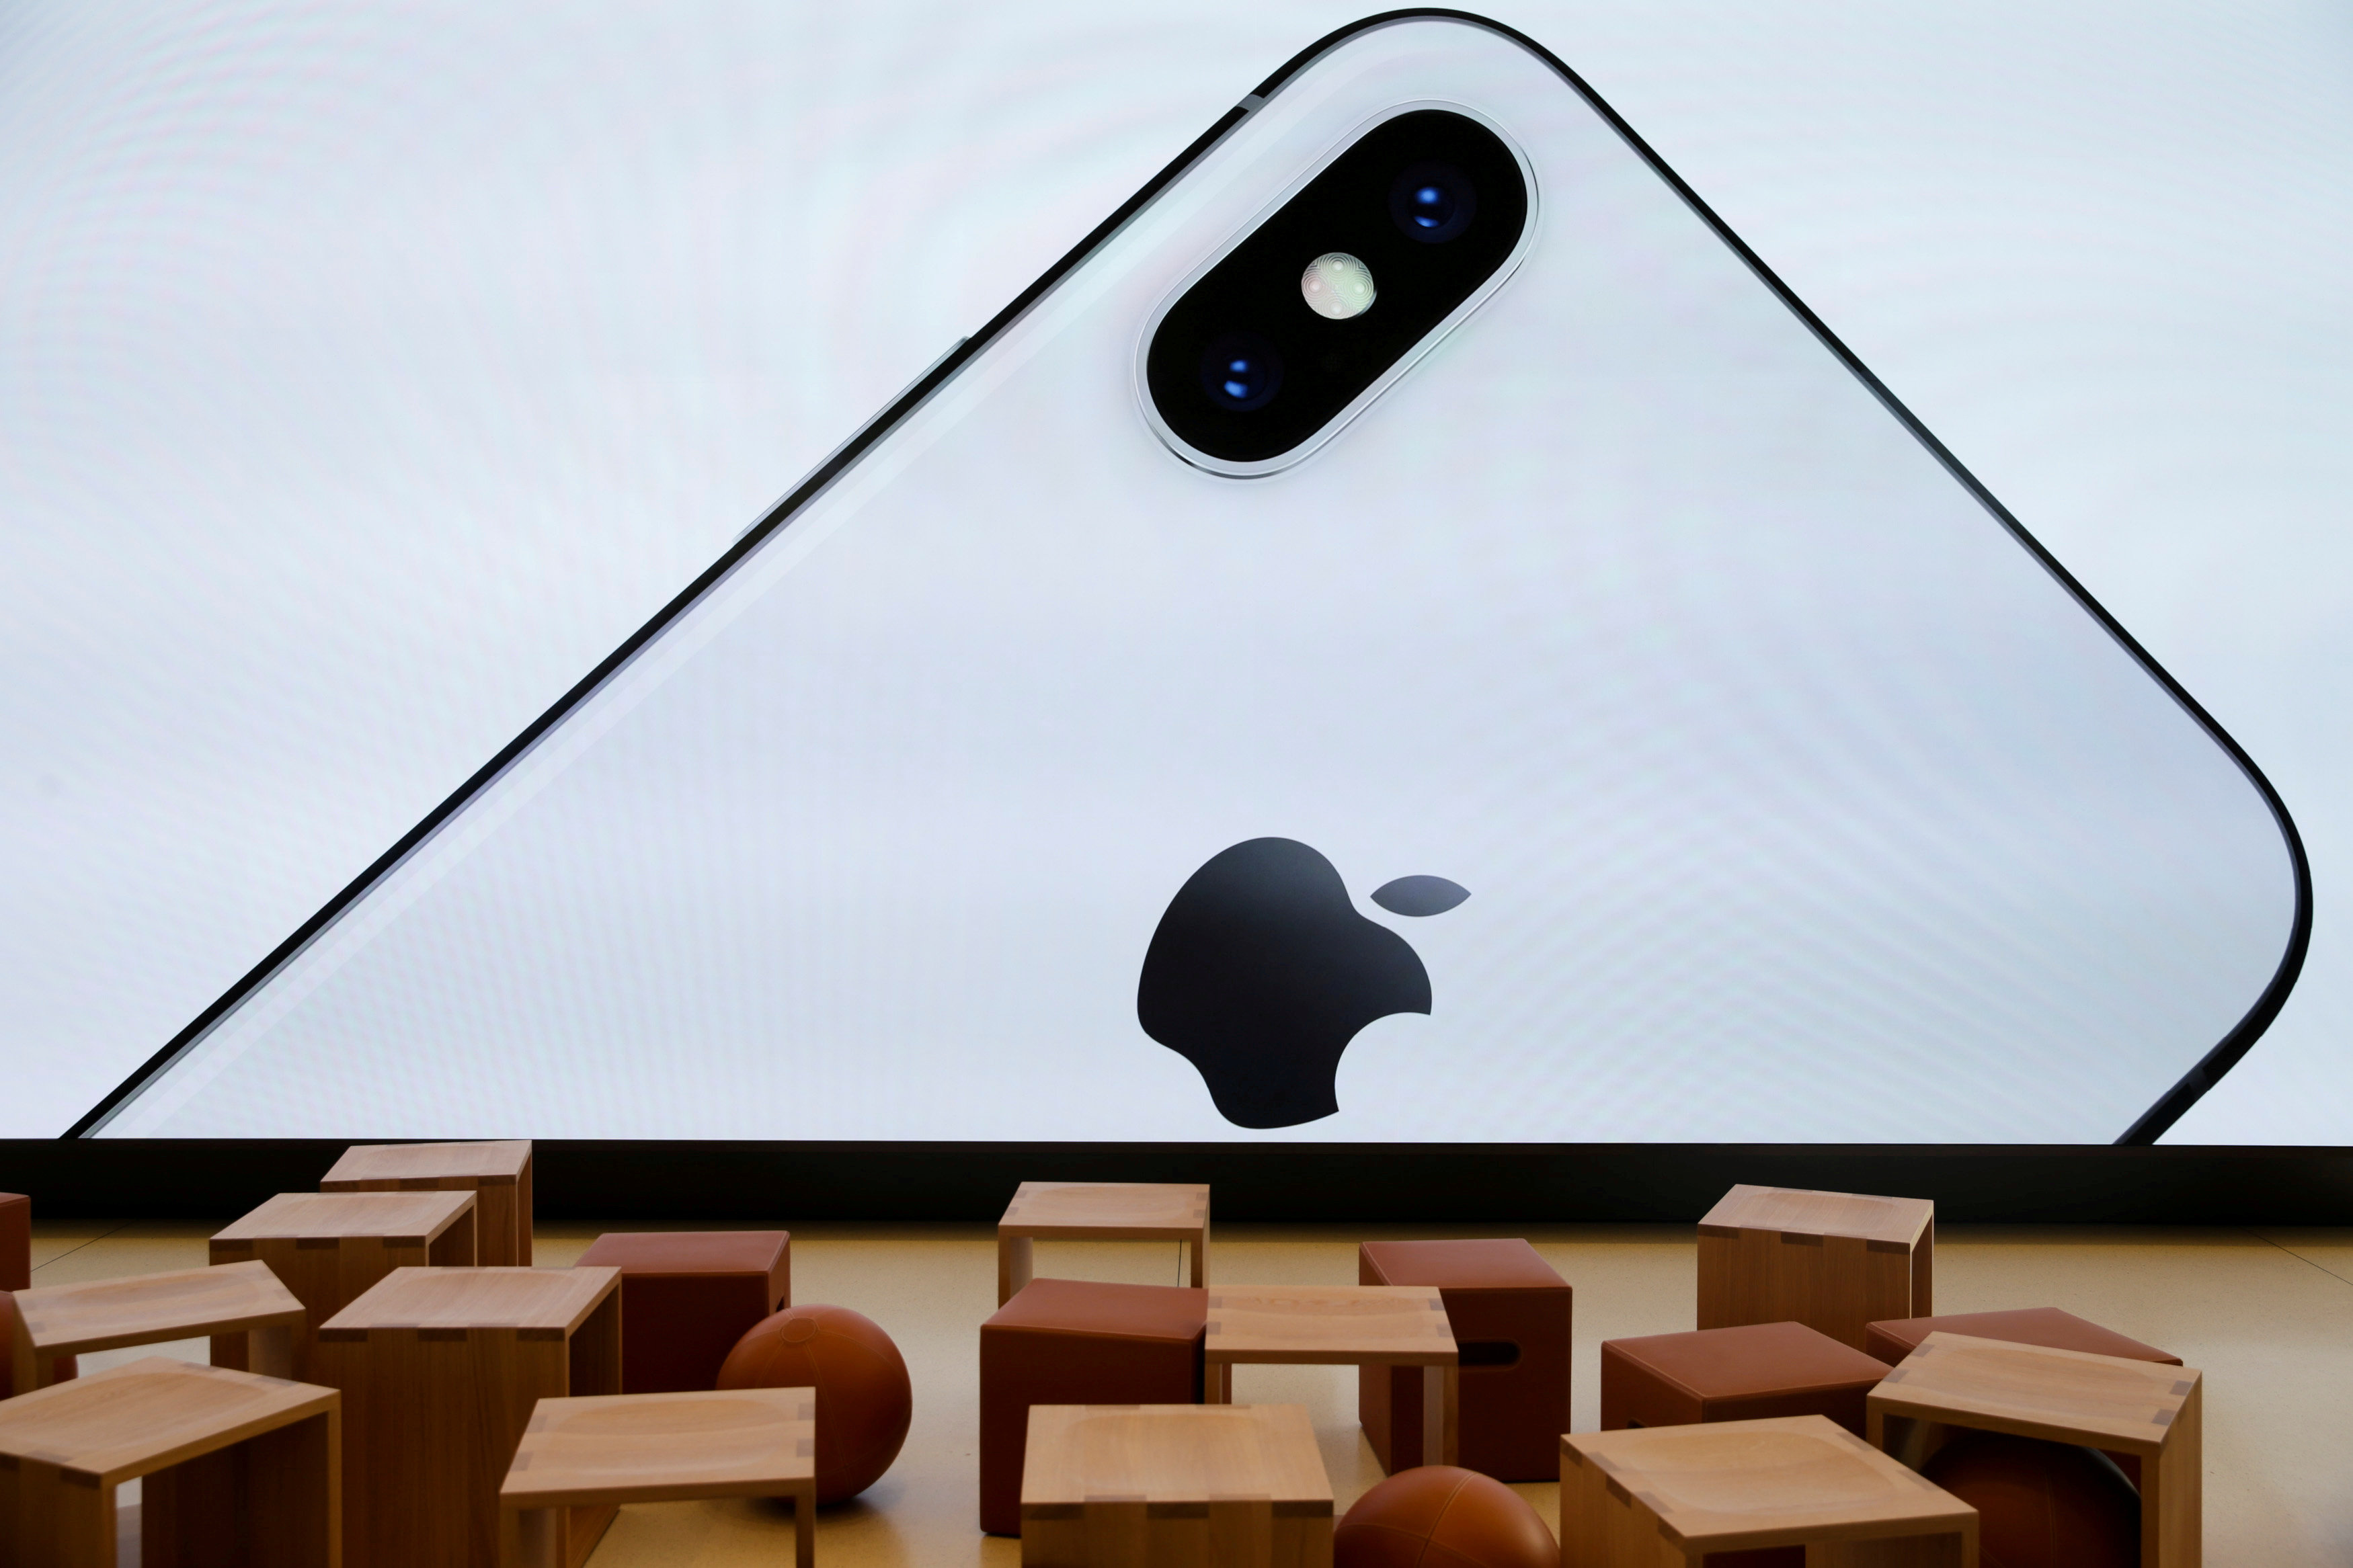 Investors look to Apple's cash, services as iPhone sales seen stalling